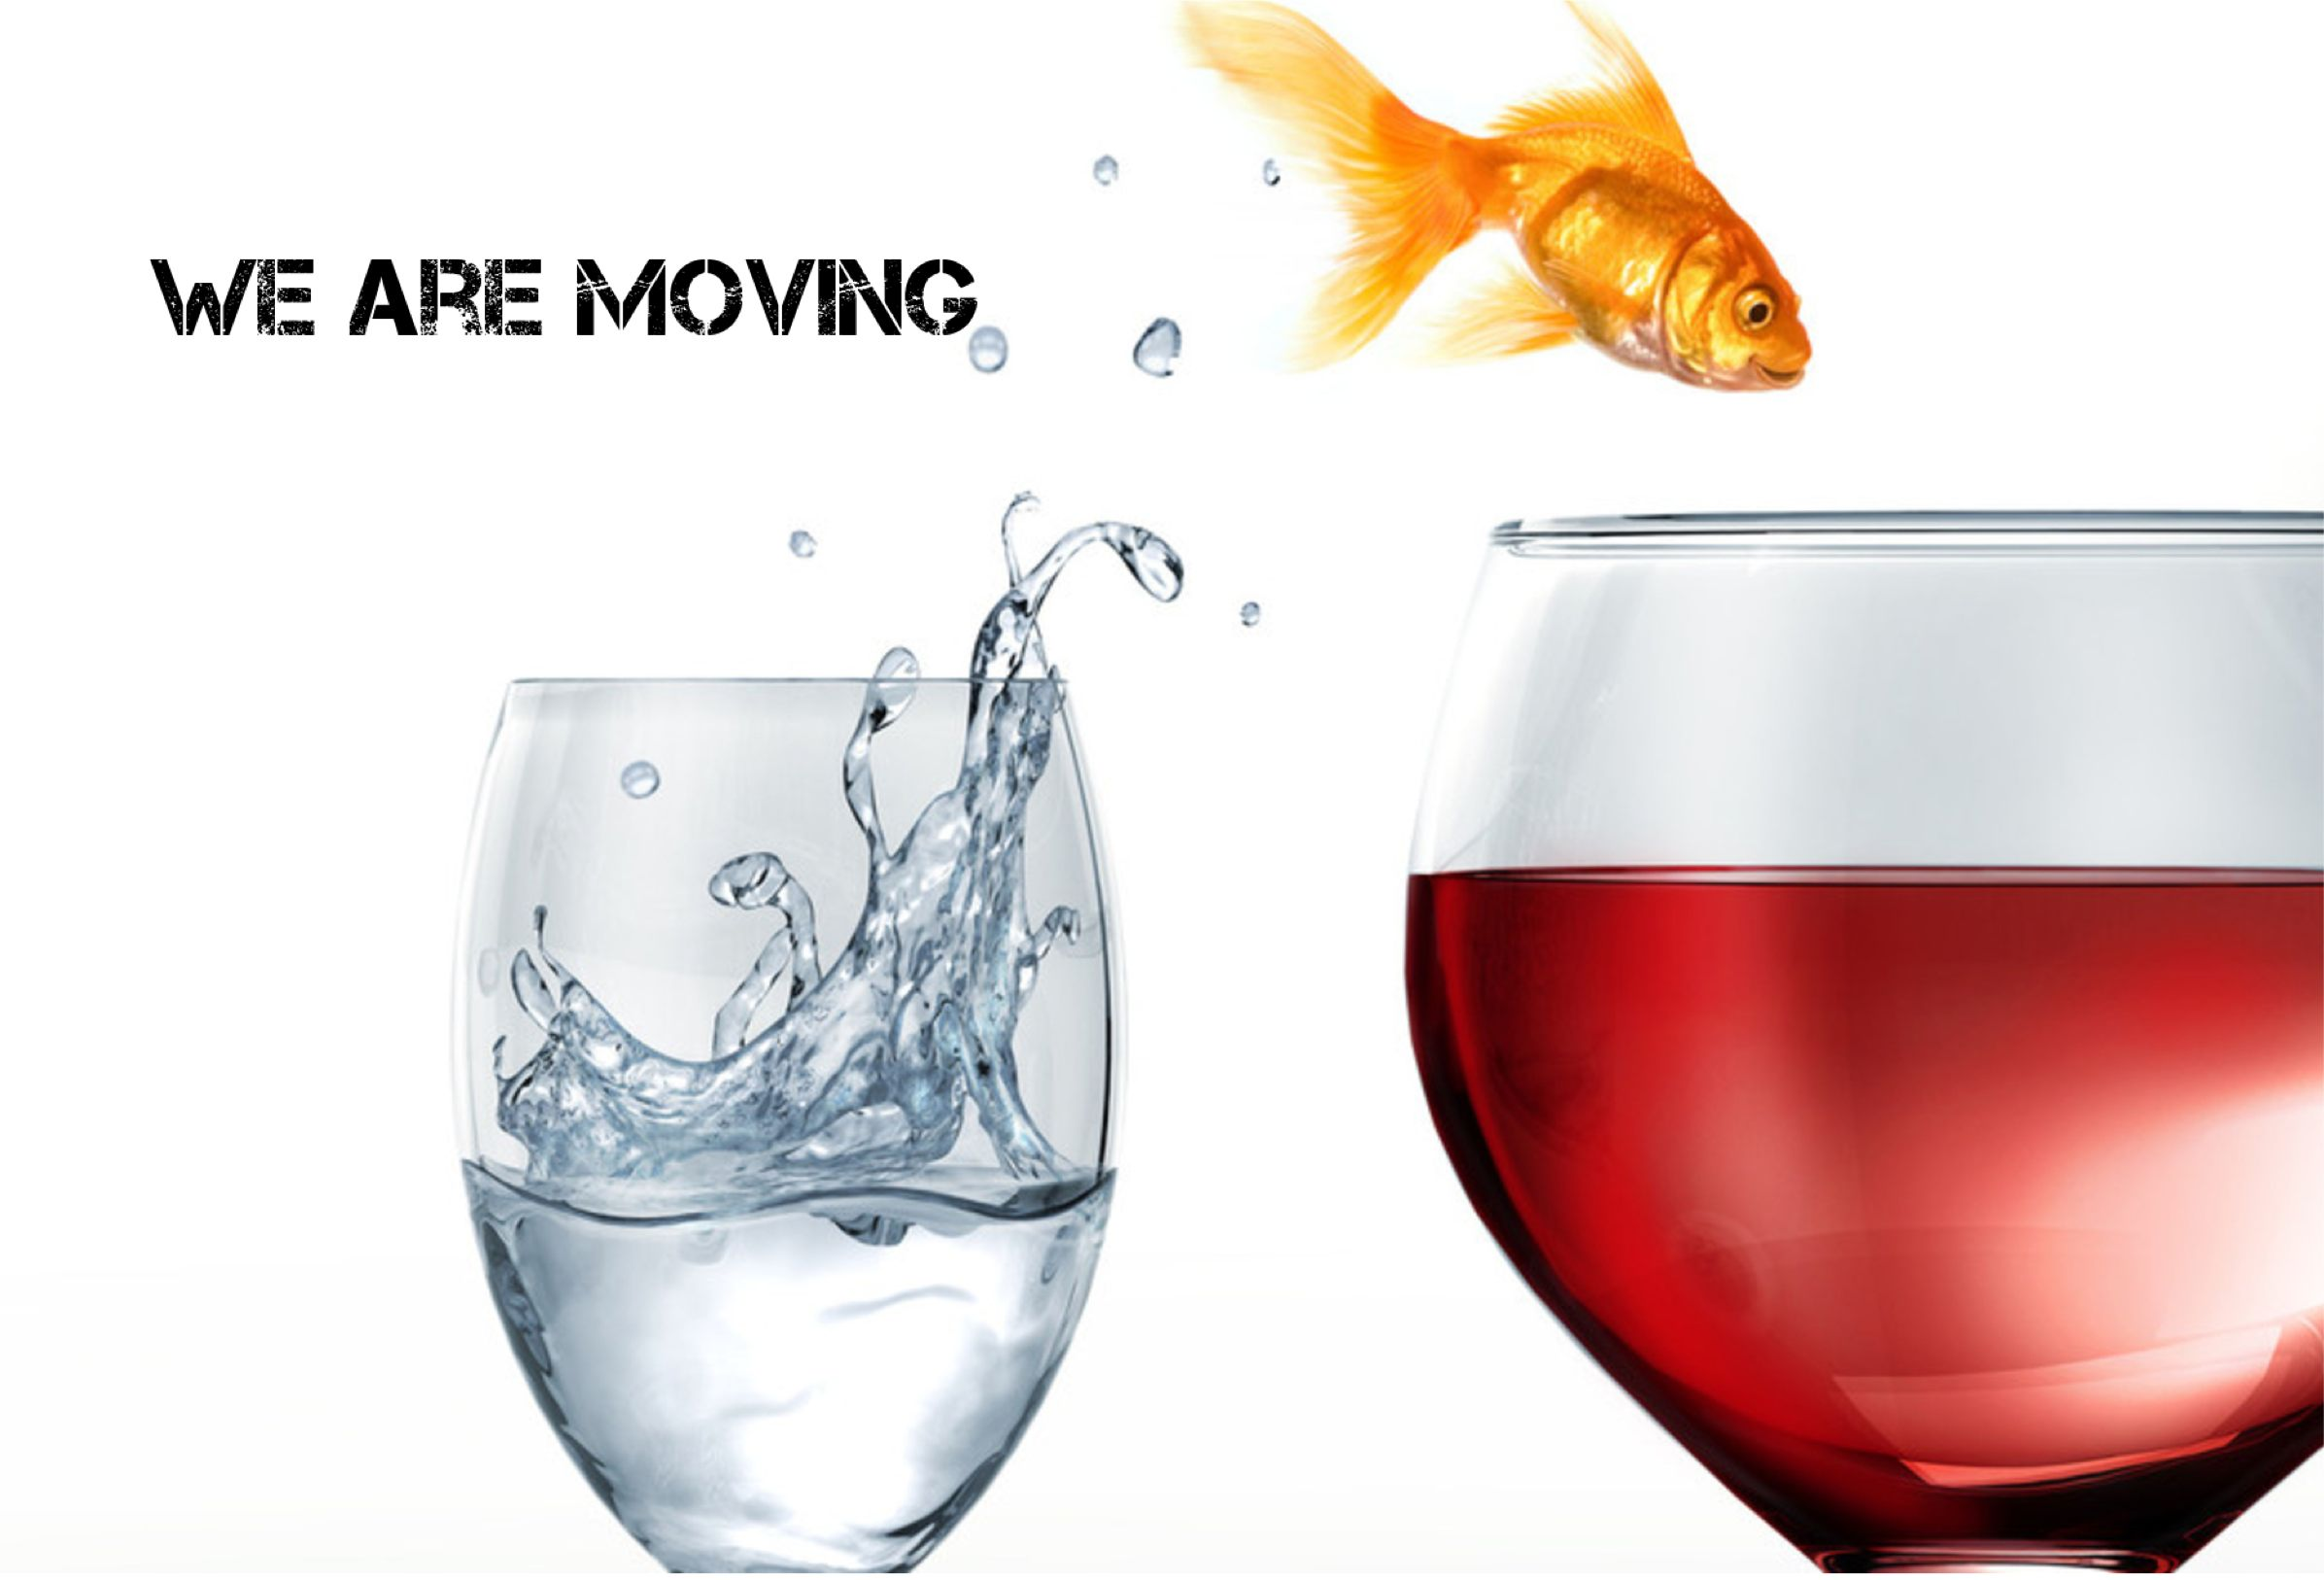 We have moved! fish jumping from one water to wine.